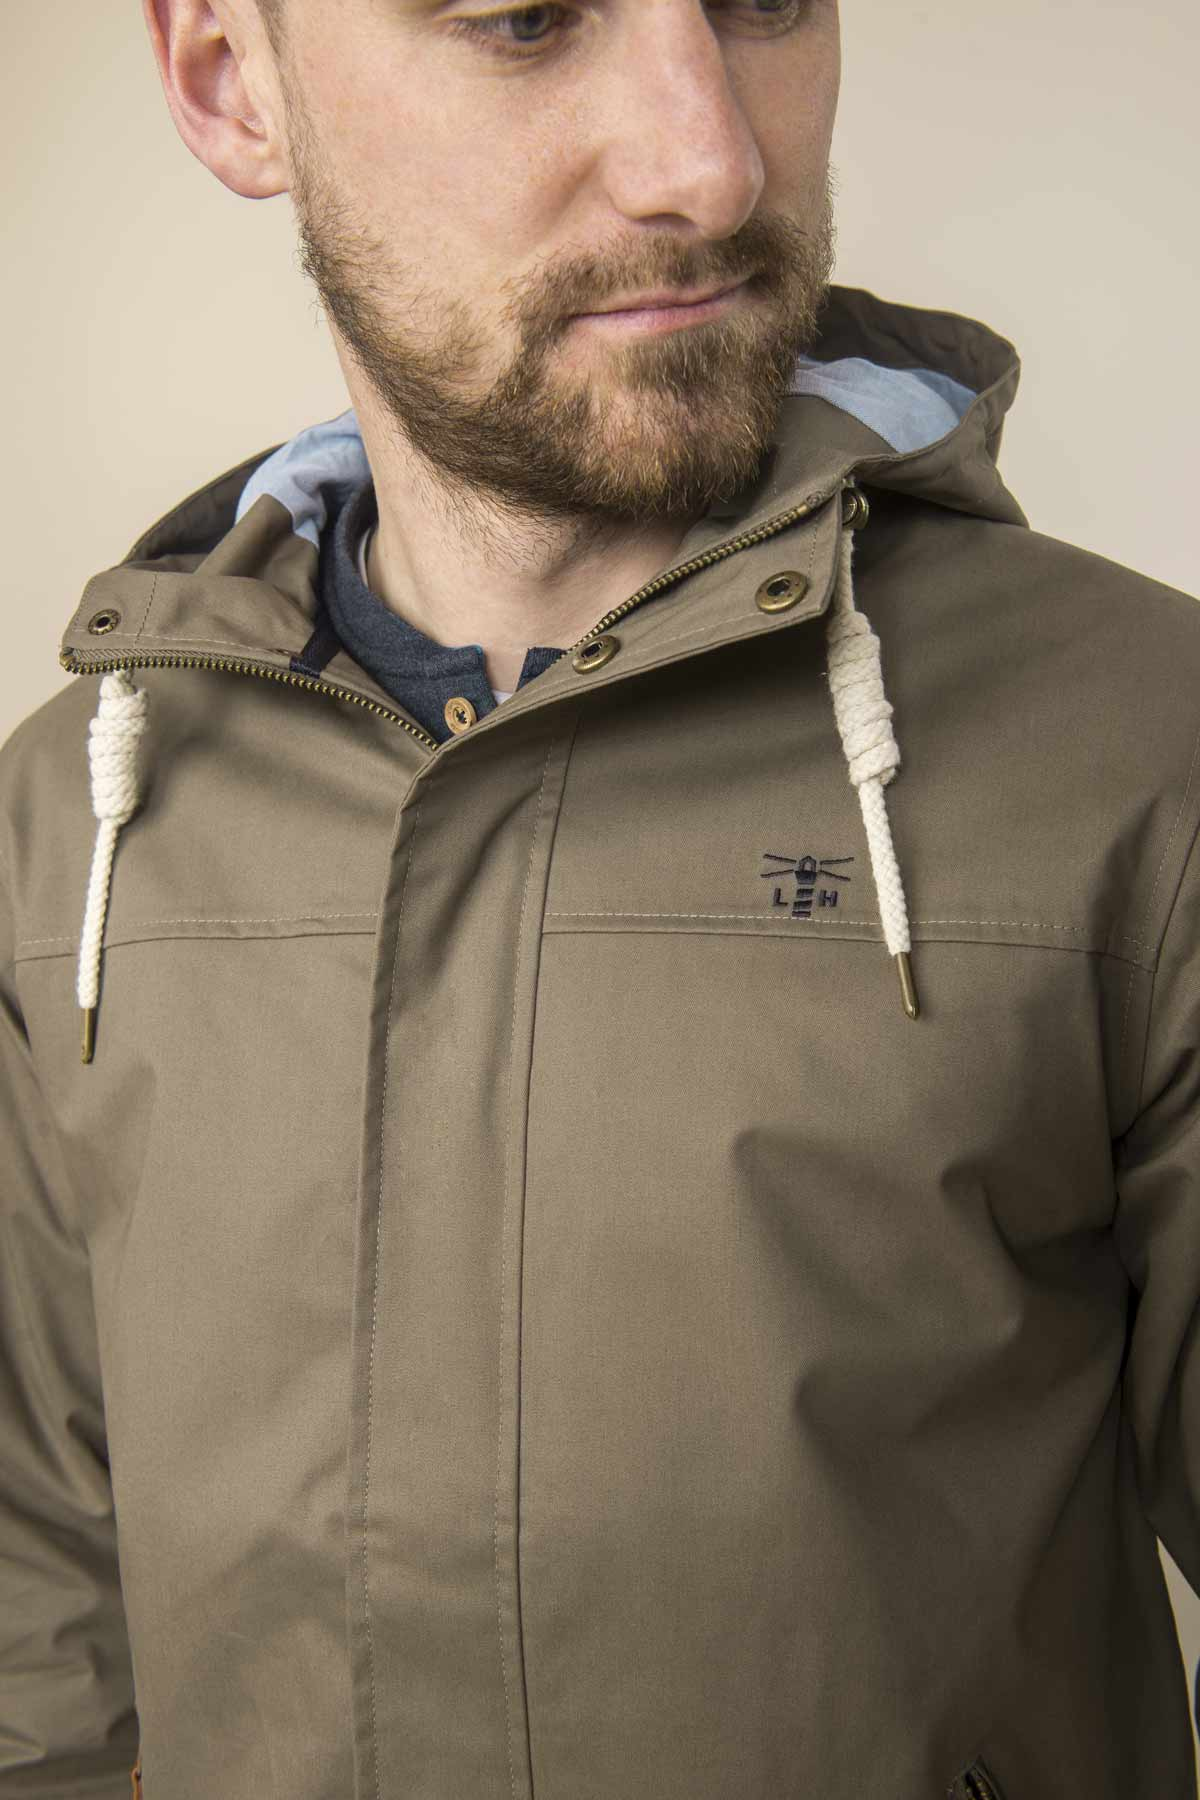 Lighthouse Drifter driftwood men's waterproof jacket